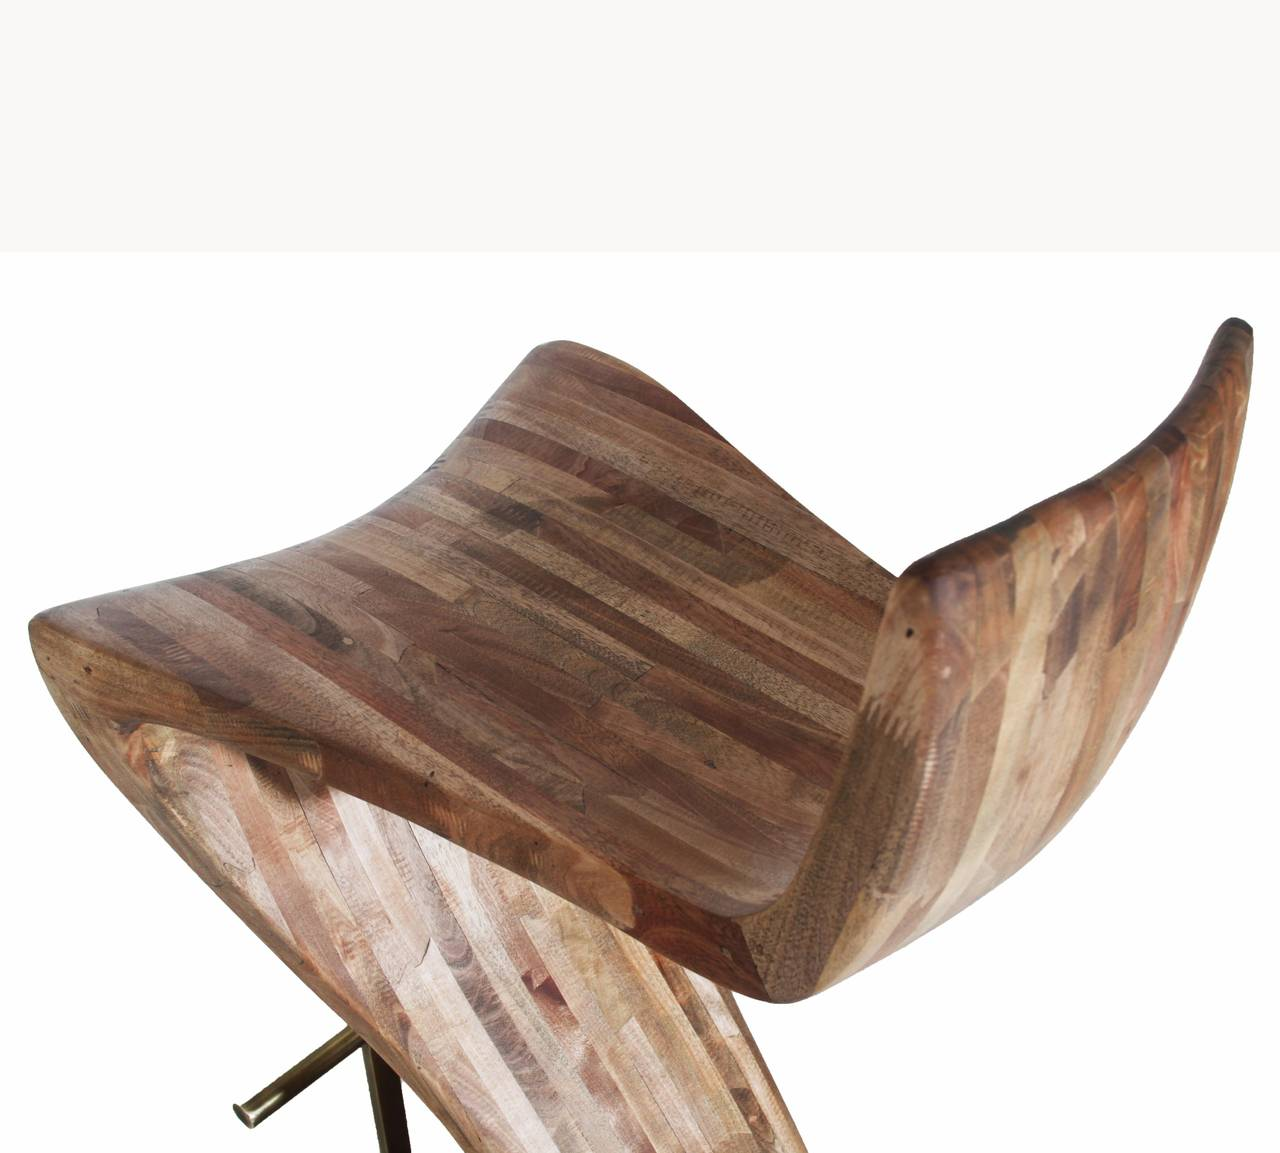 Very Impressive portraiture of Pair of Sculptural Wood Bar Stools with Solid Brass Foot Rests at  with #8A5941 color and 1280x1153 pixels